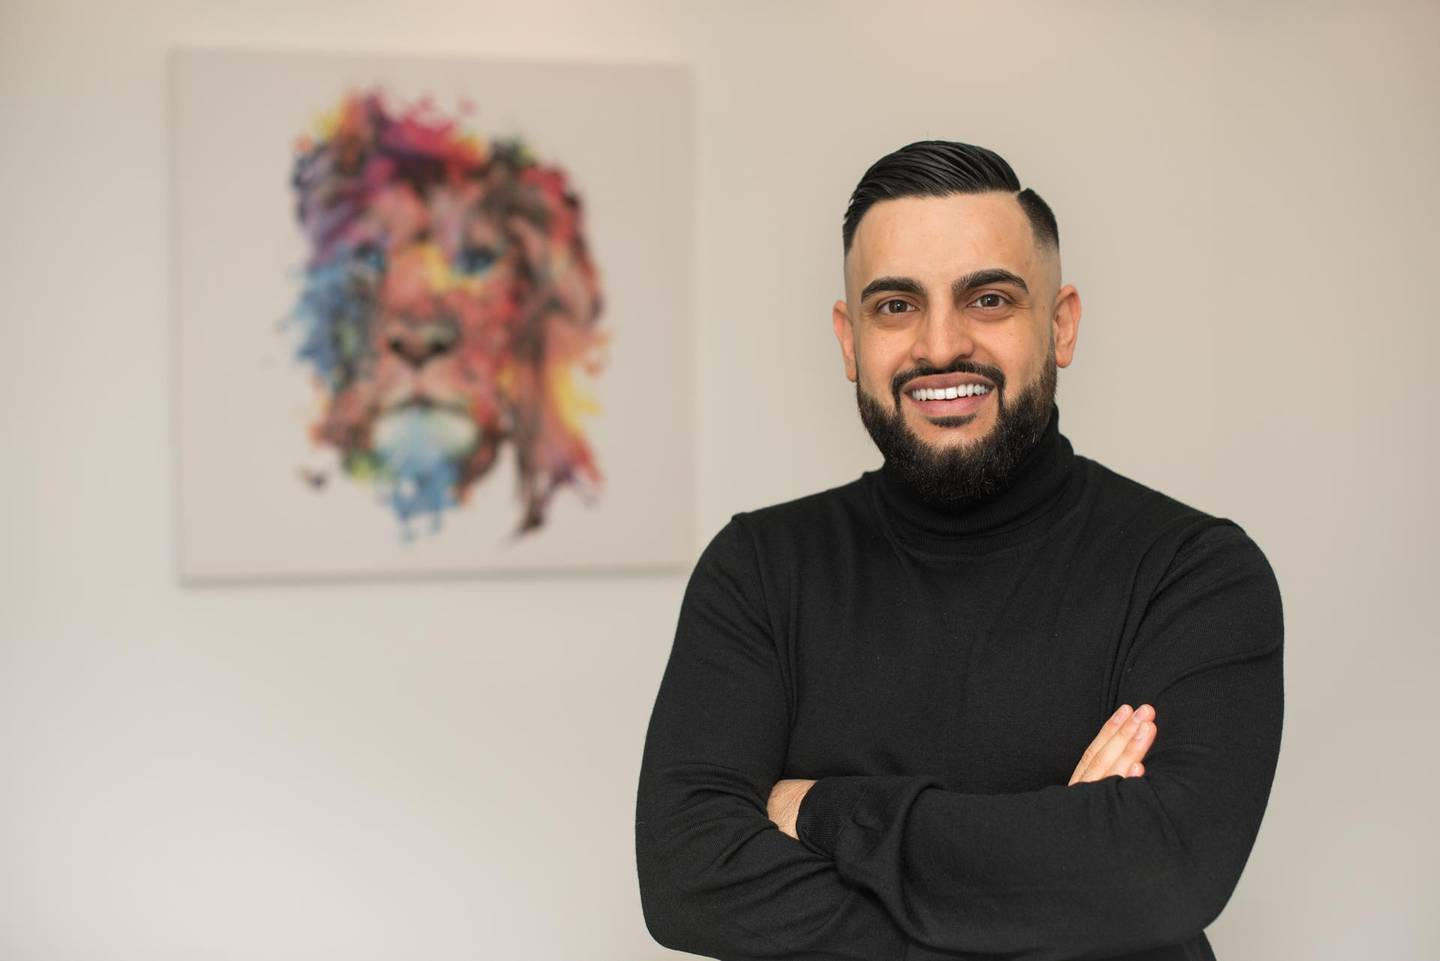 Hasib Khan, founder and chief executive of Udrive, is inspired by his father who had to start business from scratch in Germany after fleeing the war in Afghanistan. Courtesy Hasib Khan